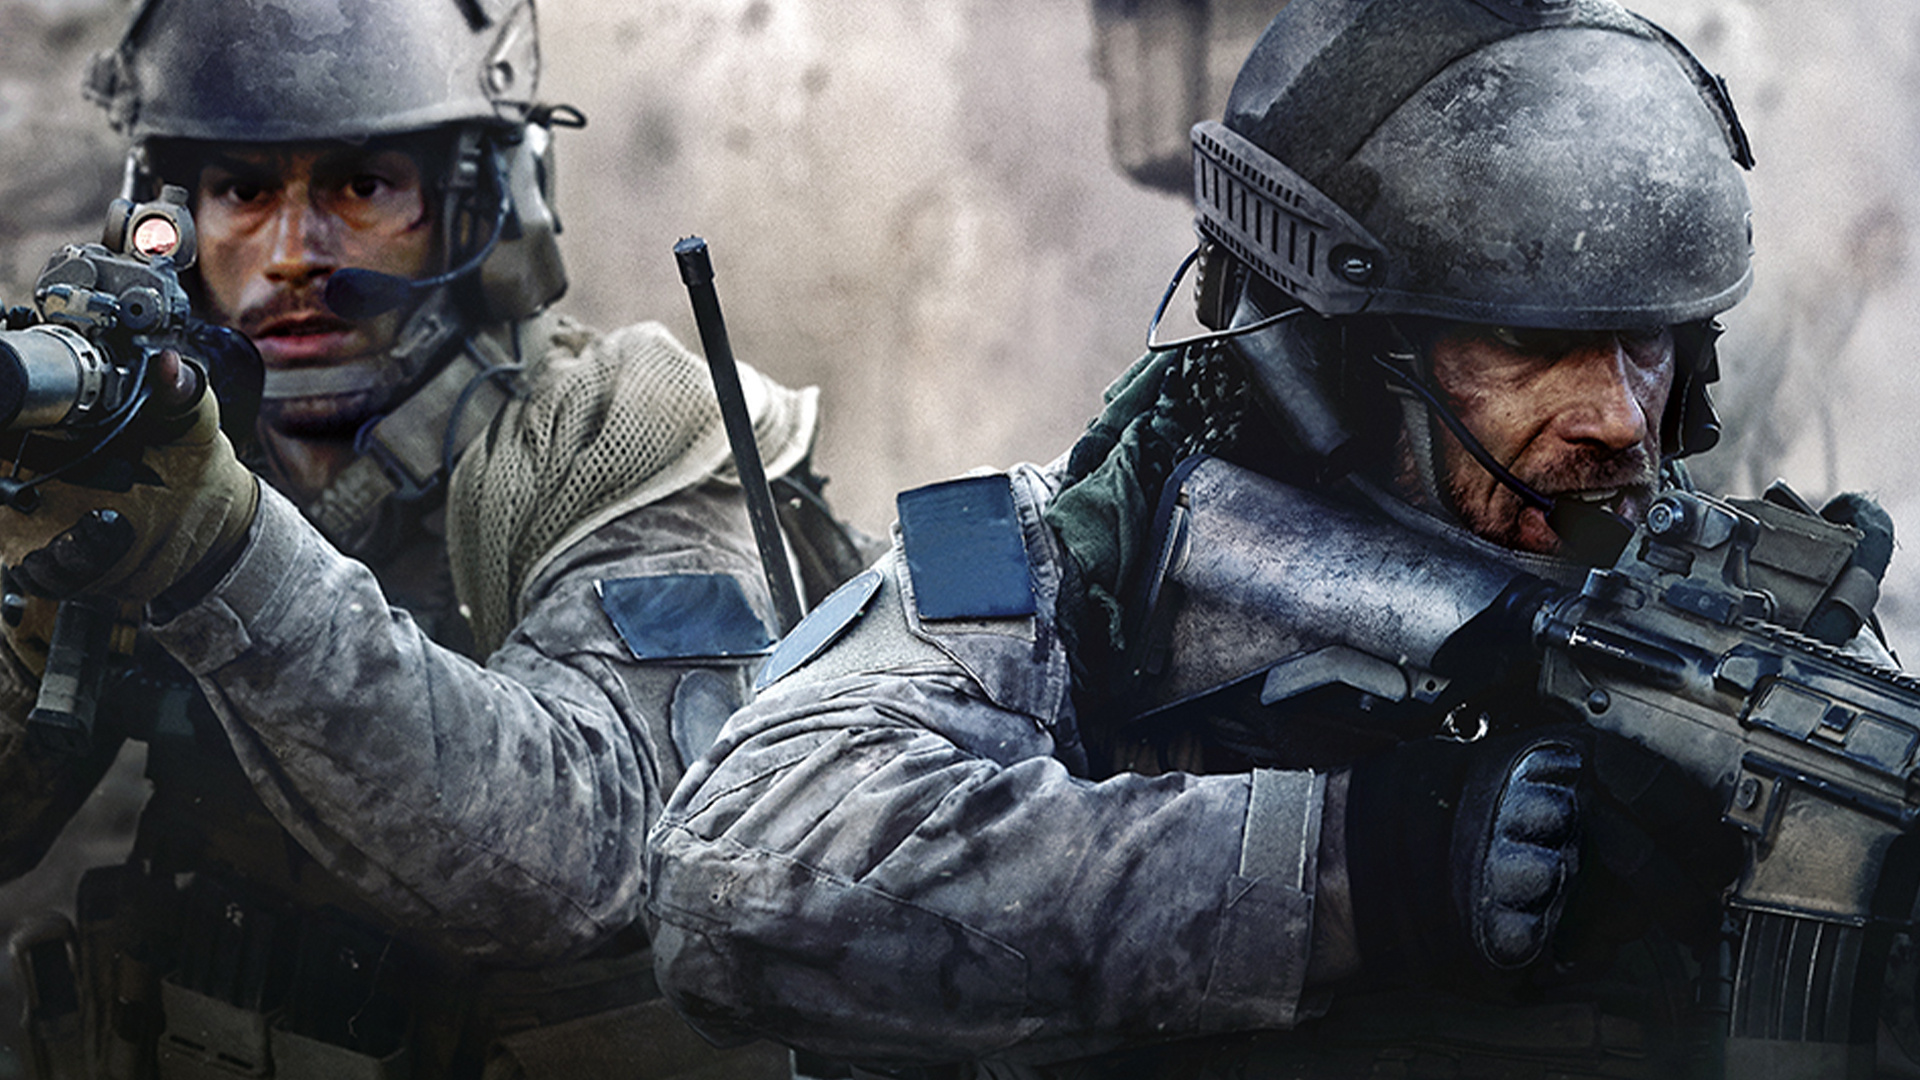 Hands On: Call of Duty: Modern Warfare's Gunfight Mode Could Be the Next Big Thing